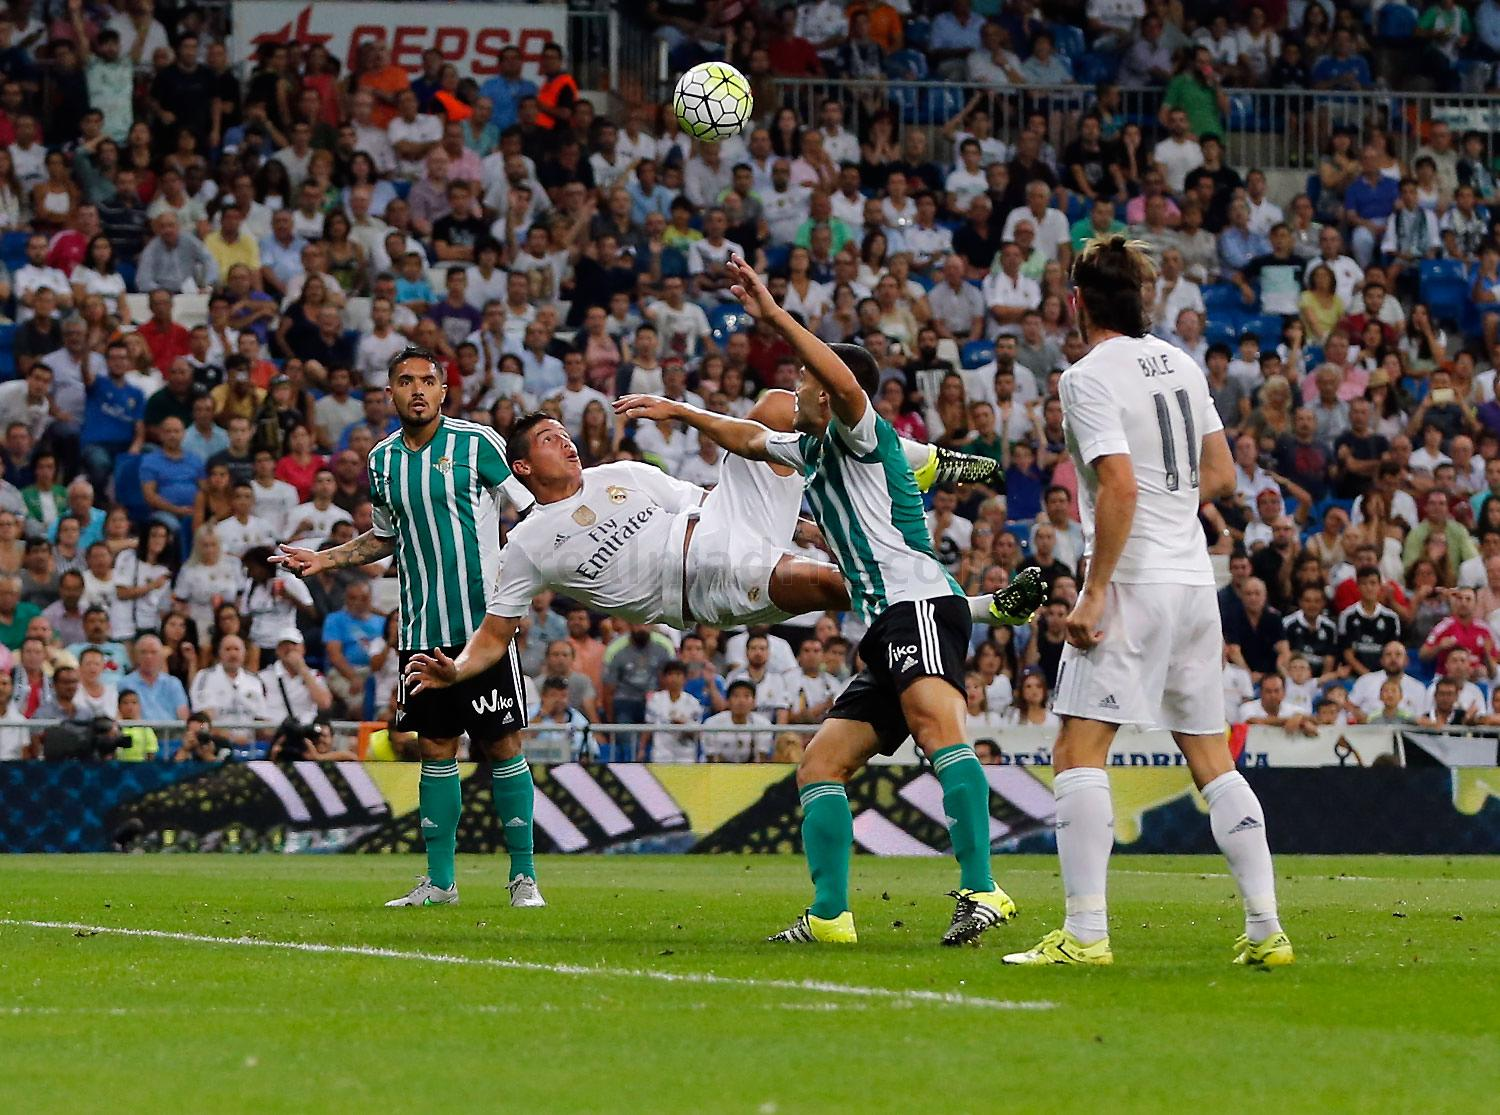 Real Madrid - Real Madrid - Real Betis - 29-08-2015